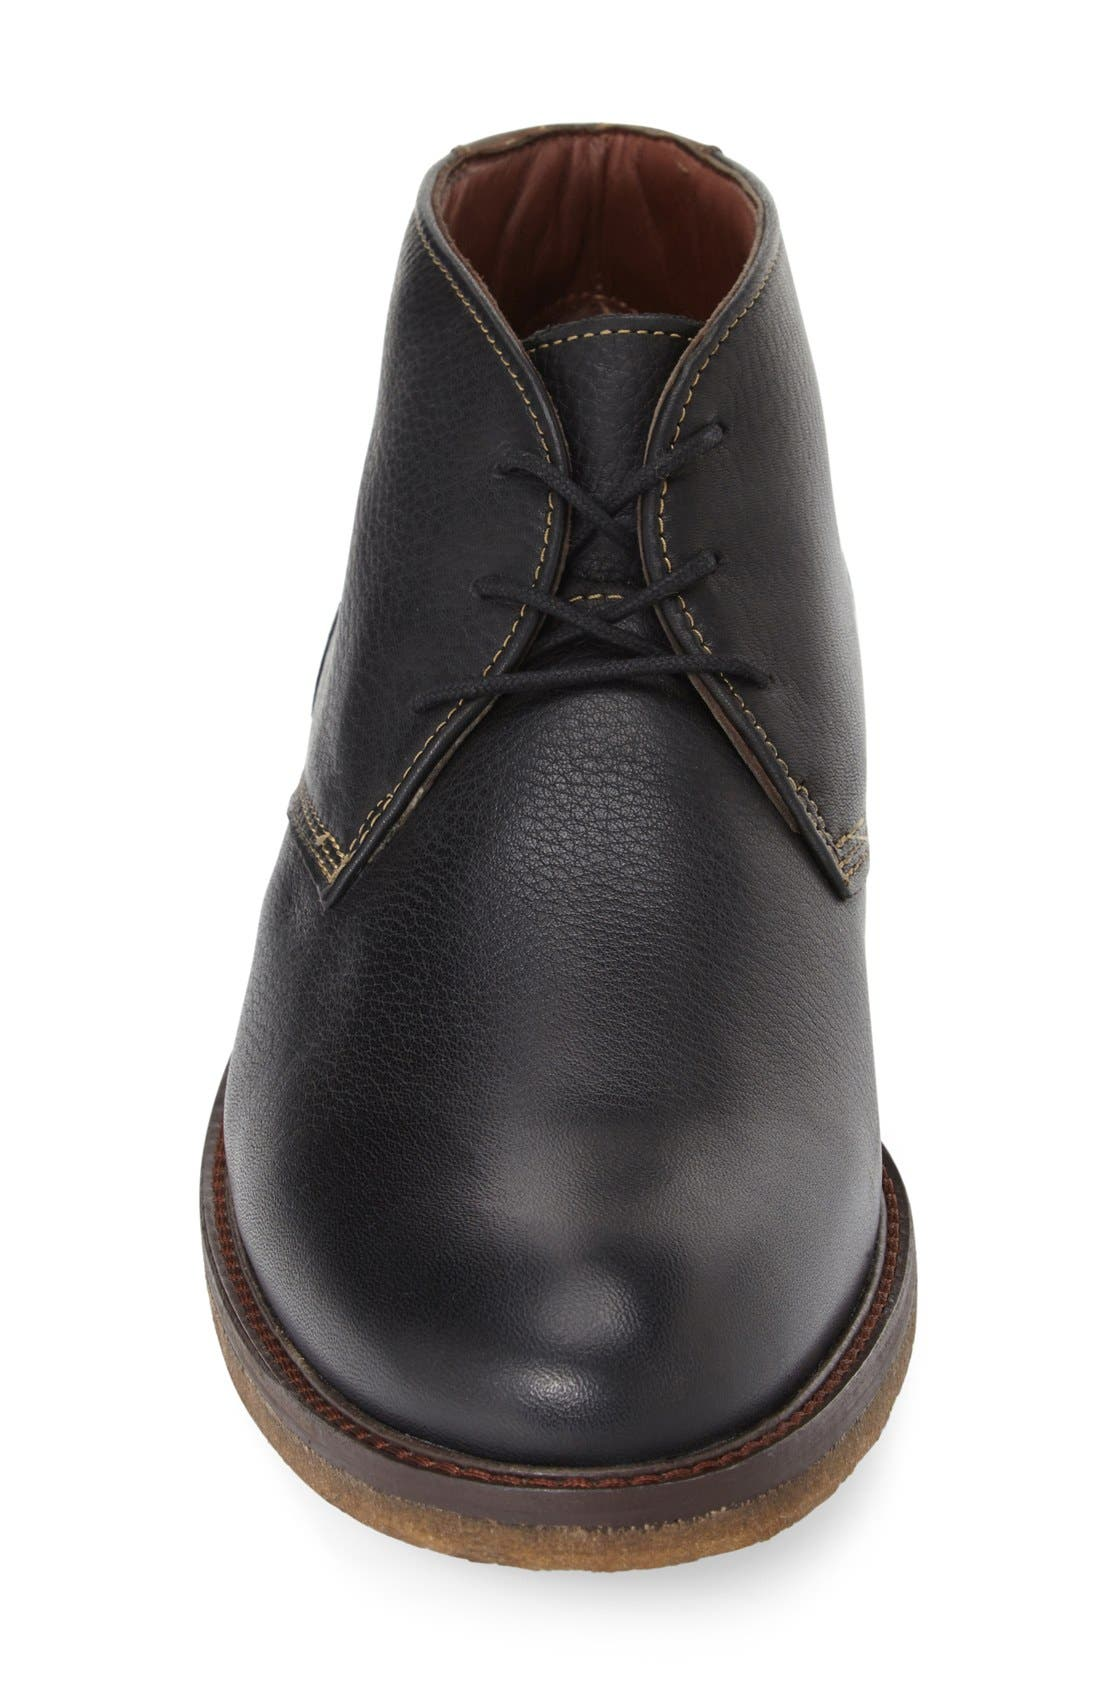 'Copeland' Suede Chukka Boot,                             Alternate thumbnail 3, color,                             BLACK LEATHER